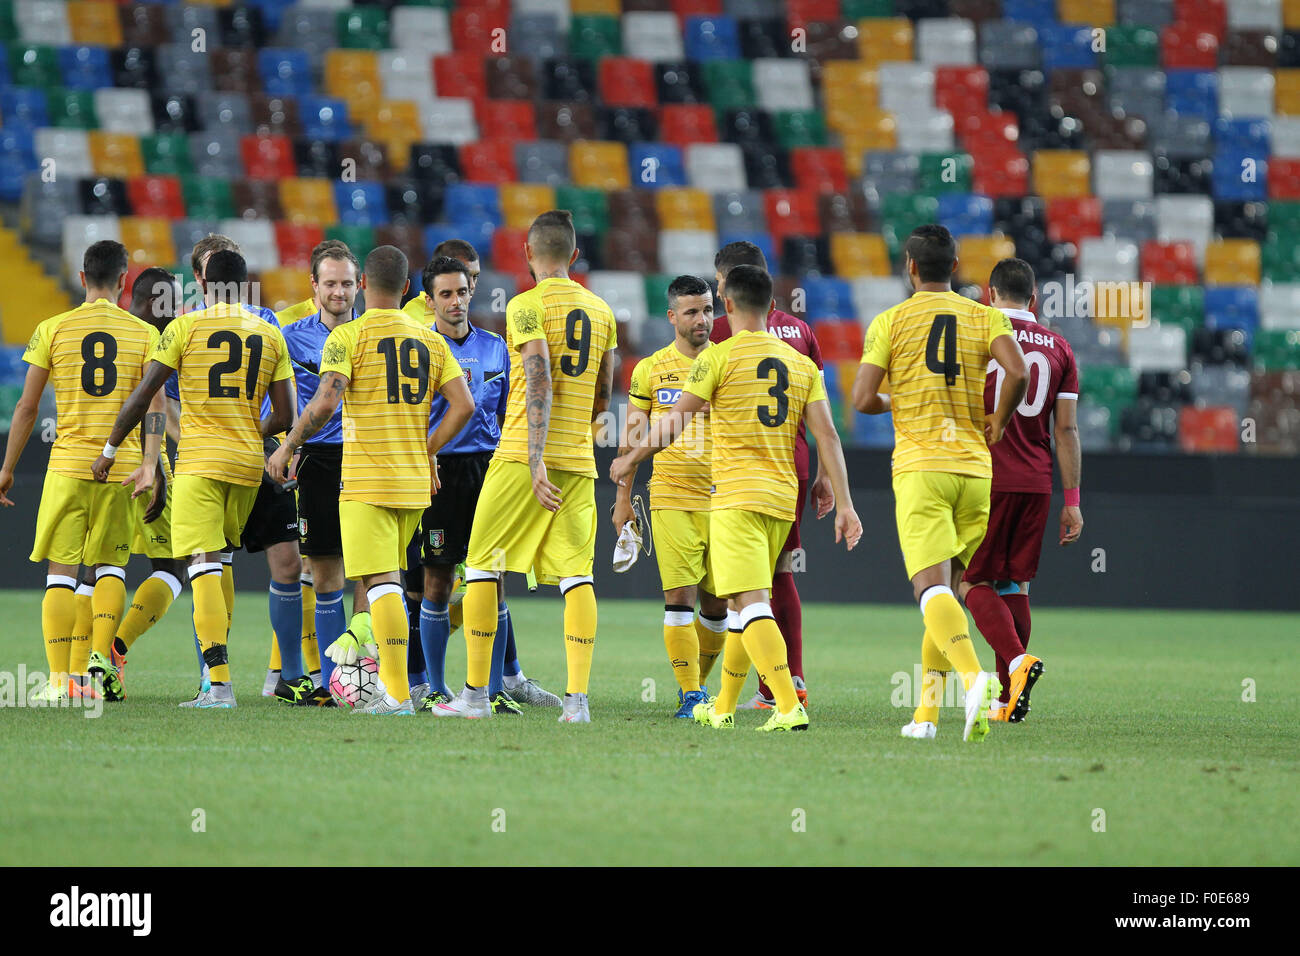 Udine, Italy. 13th August, 2015. Match started the friendly pre-season football match Udinese Calcio v El-Jaish - Stock Image